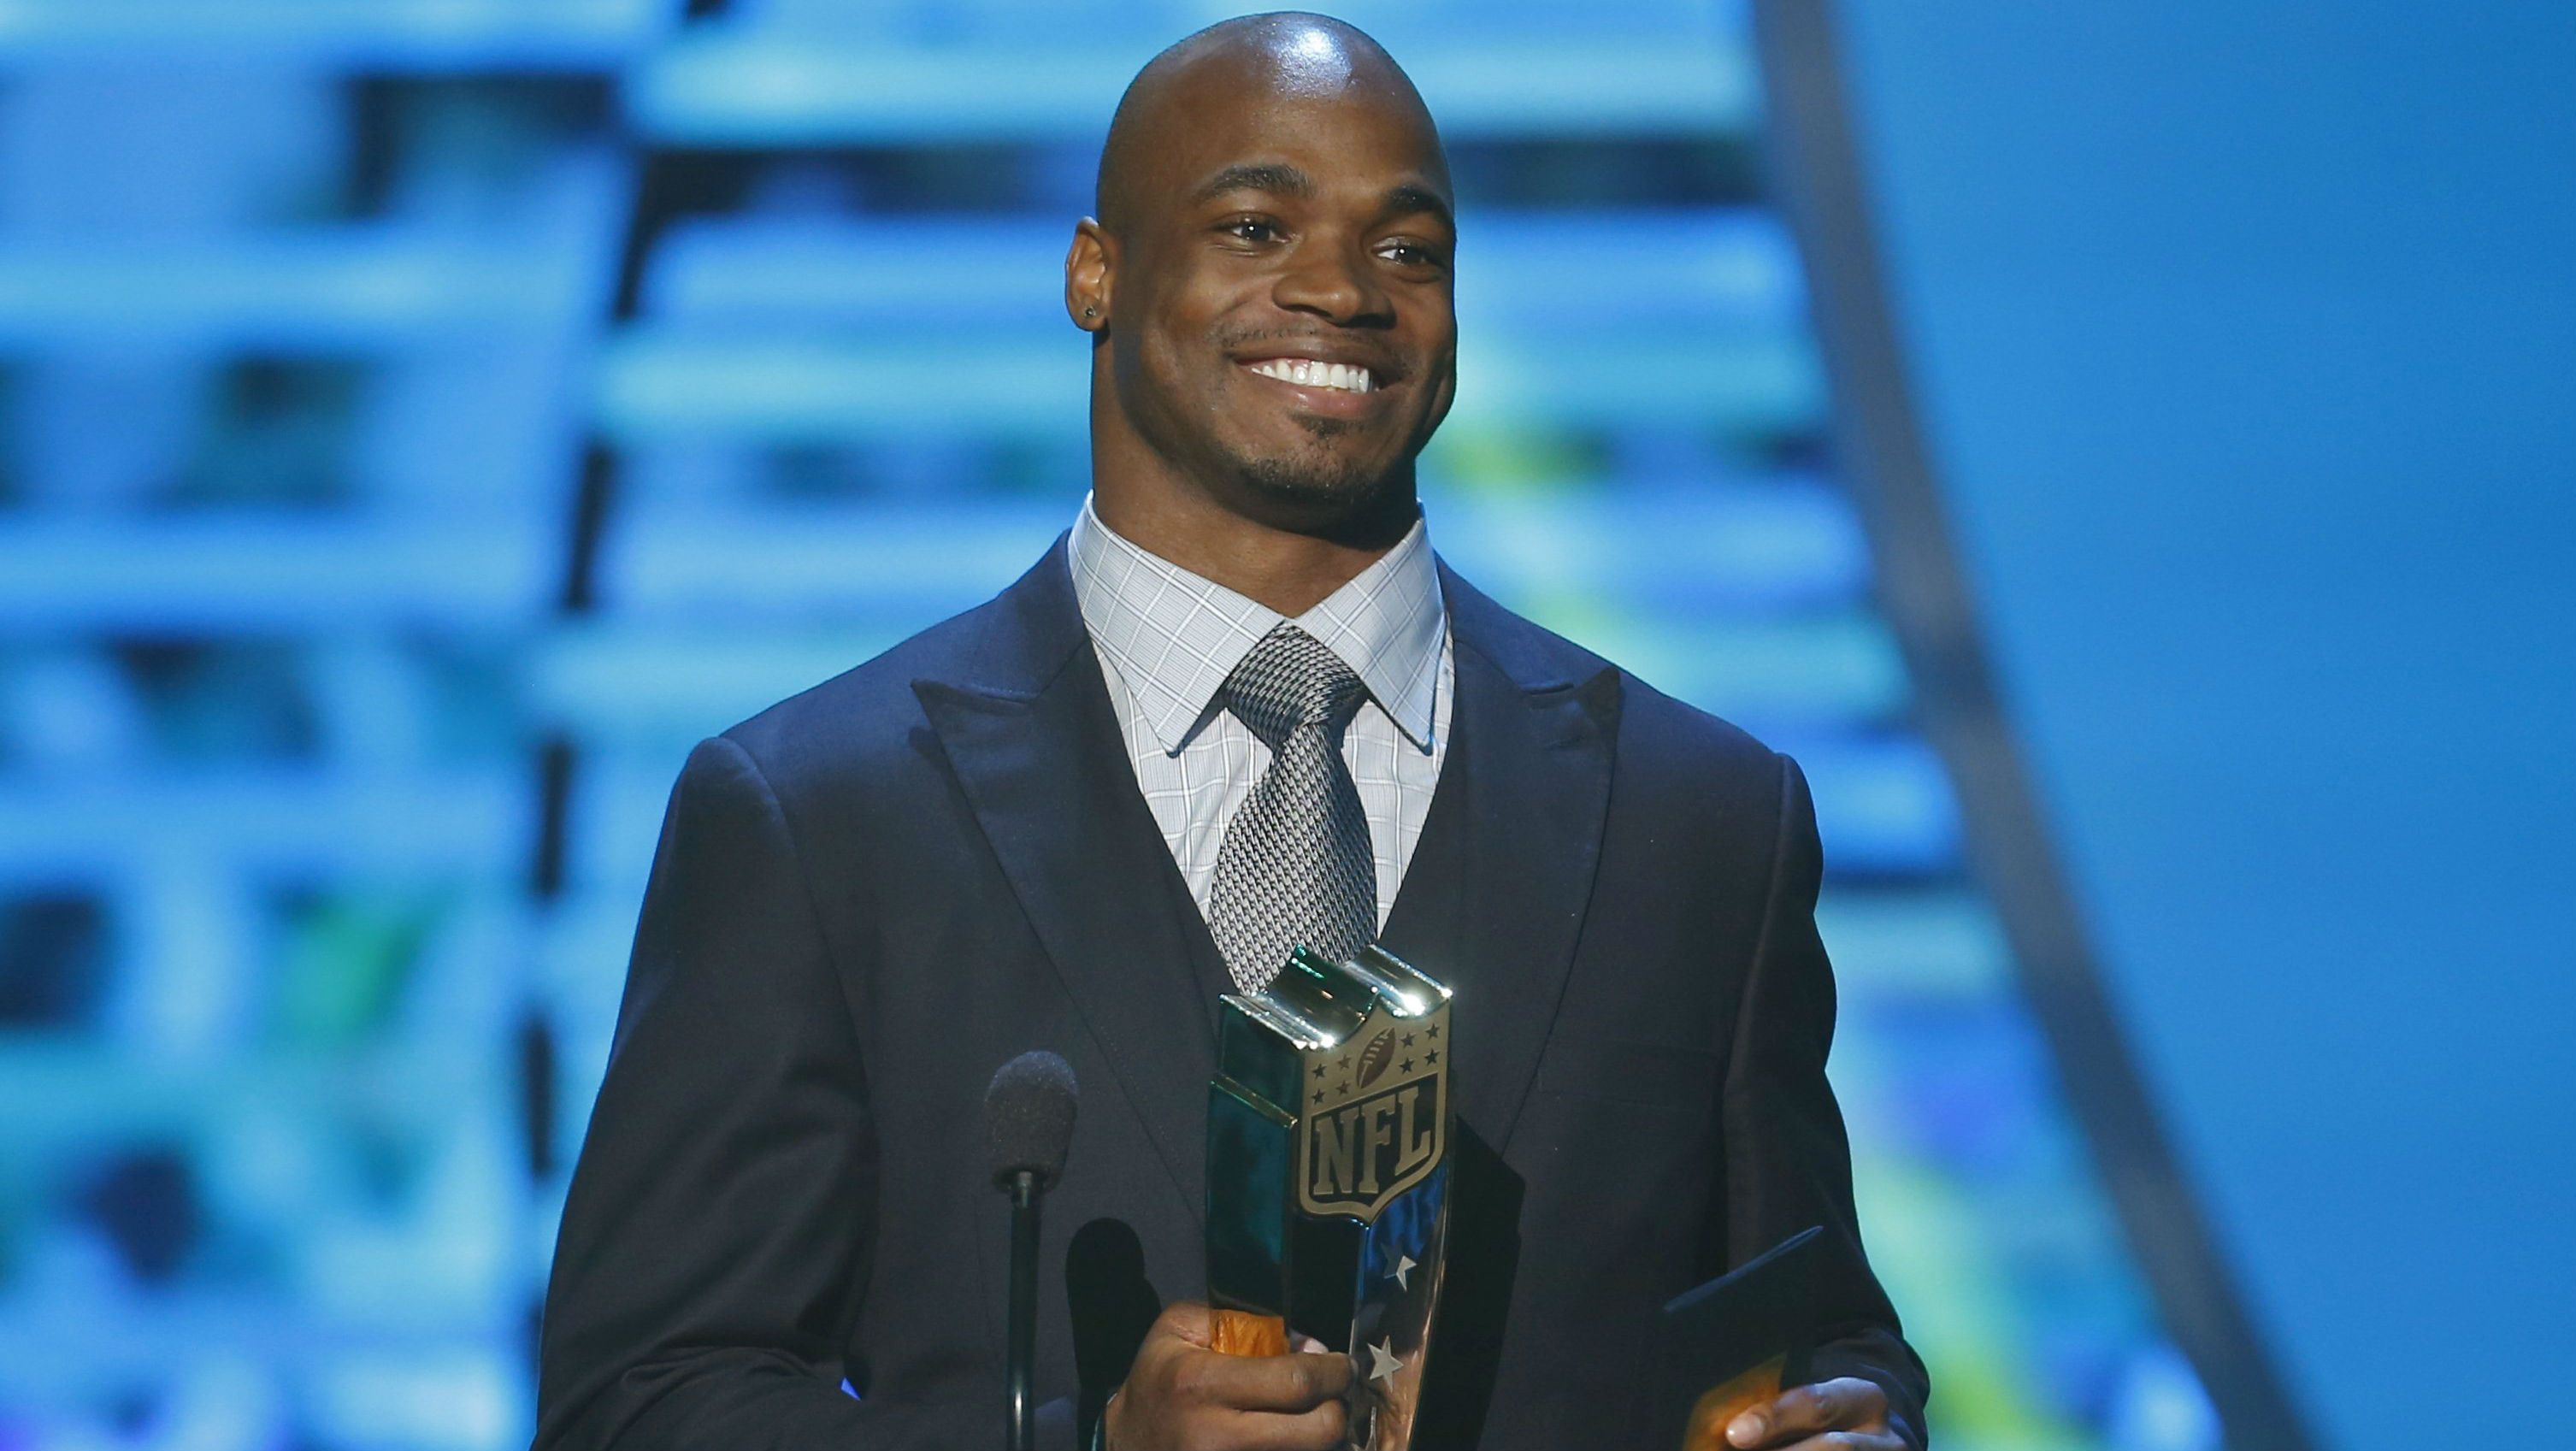 Minnesota Vikings running back Adrian Peterson accepts the NFL MVP award during the NFL Honors awards show in New Orleans, Louisiana February 2, 2013. REUTERS/Jeff Haynes (UNITED STATES - Tags: SPORT FOOTBALL ENTERTAINMENT)